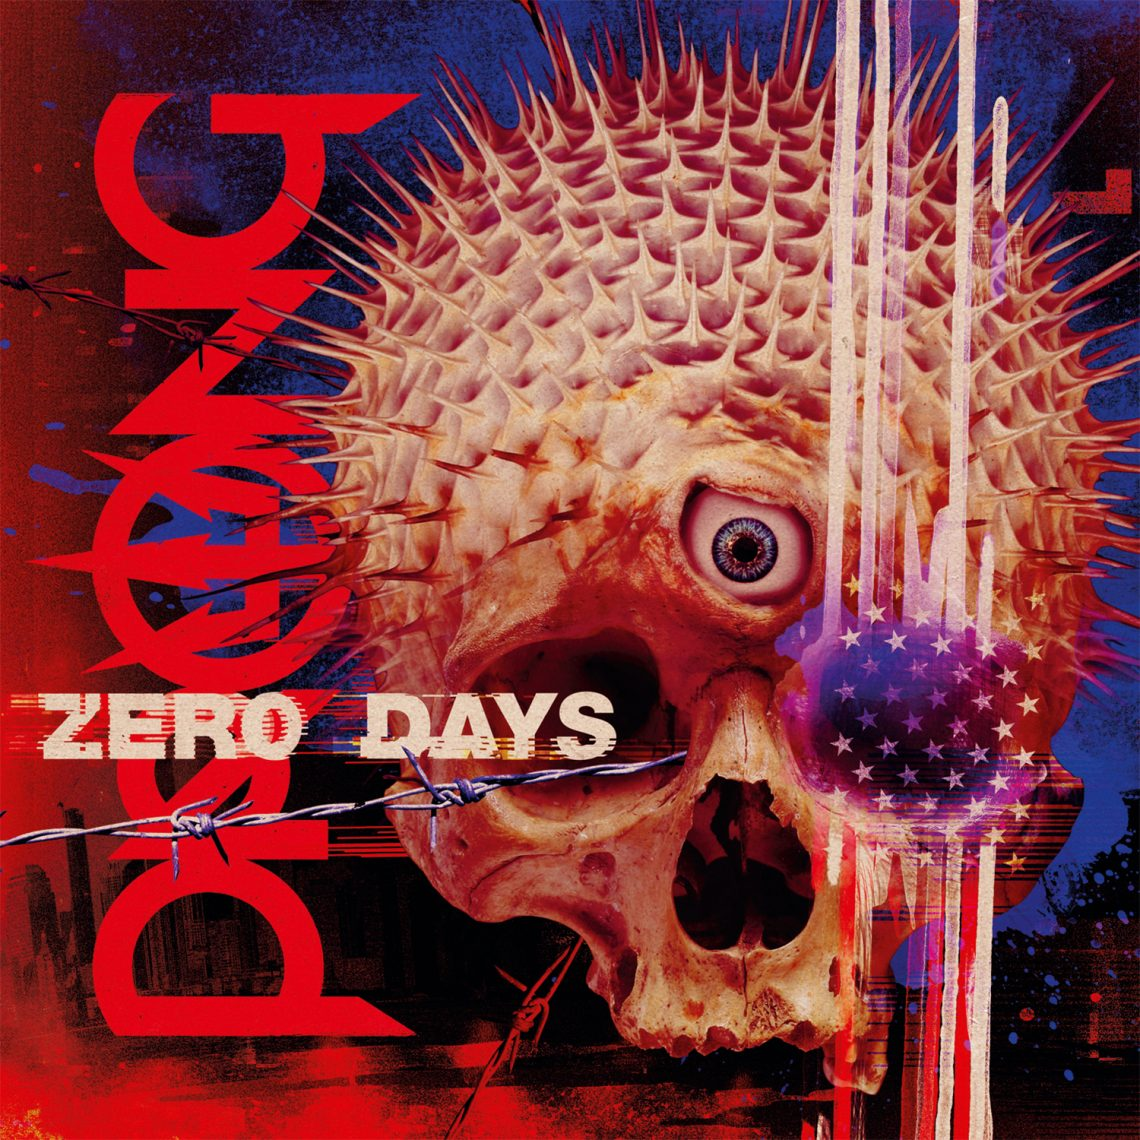 PRONG release new lyric video!